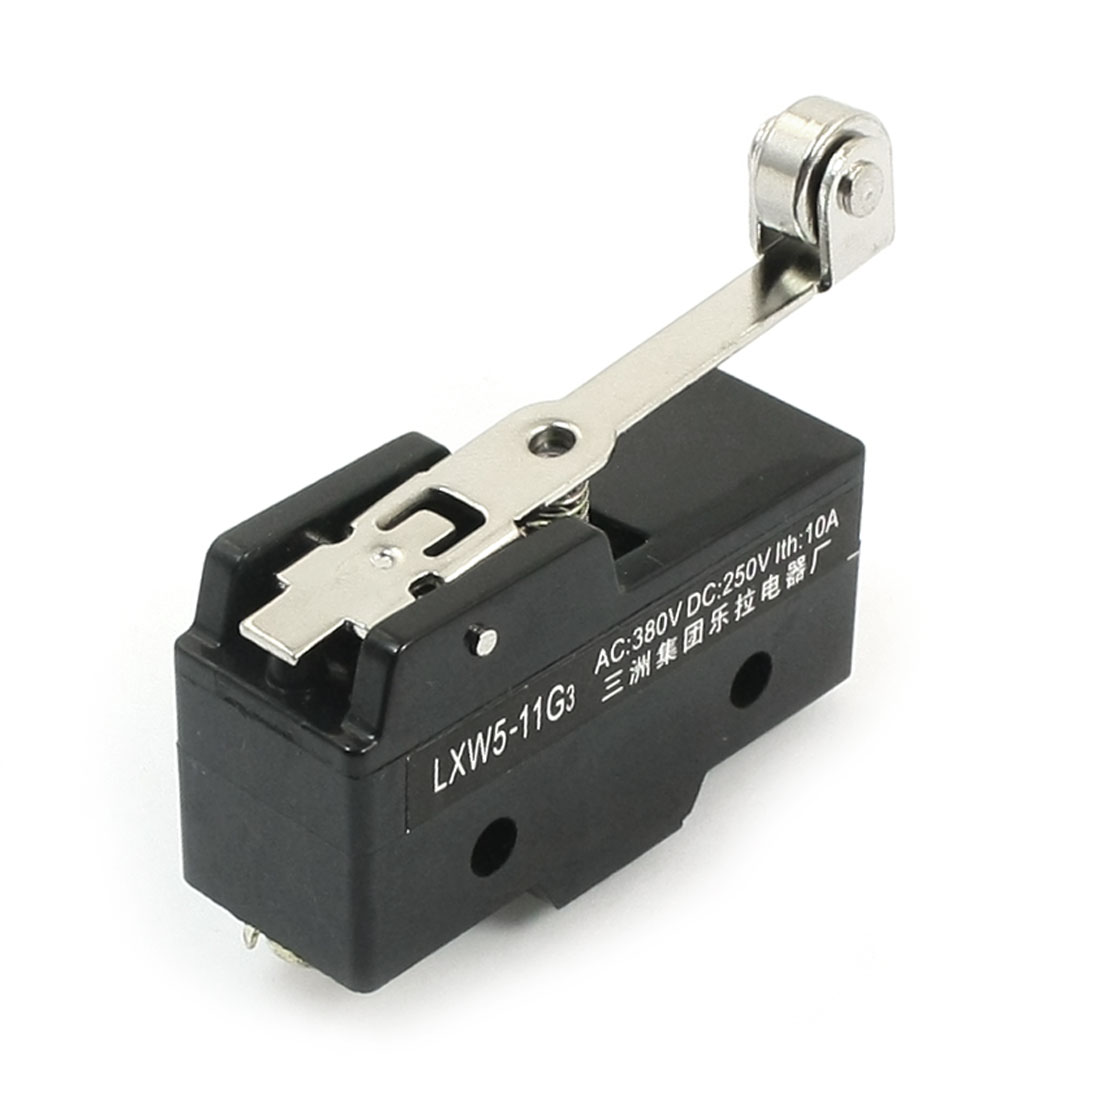 LXW5-11G3 SPDT 1NO 1NC 3 Screw Terminals Momentary Automatic Reset Long Hinge Roller Lever Limit Micro Switch